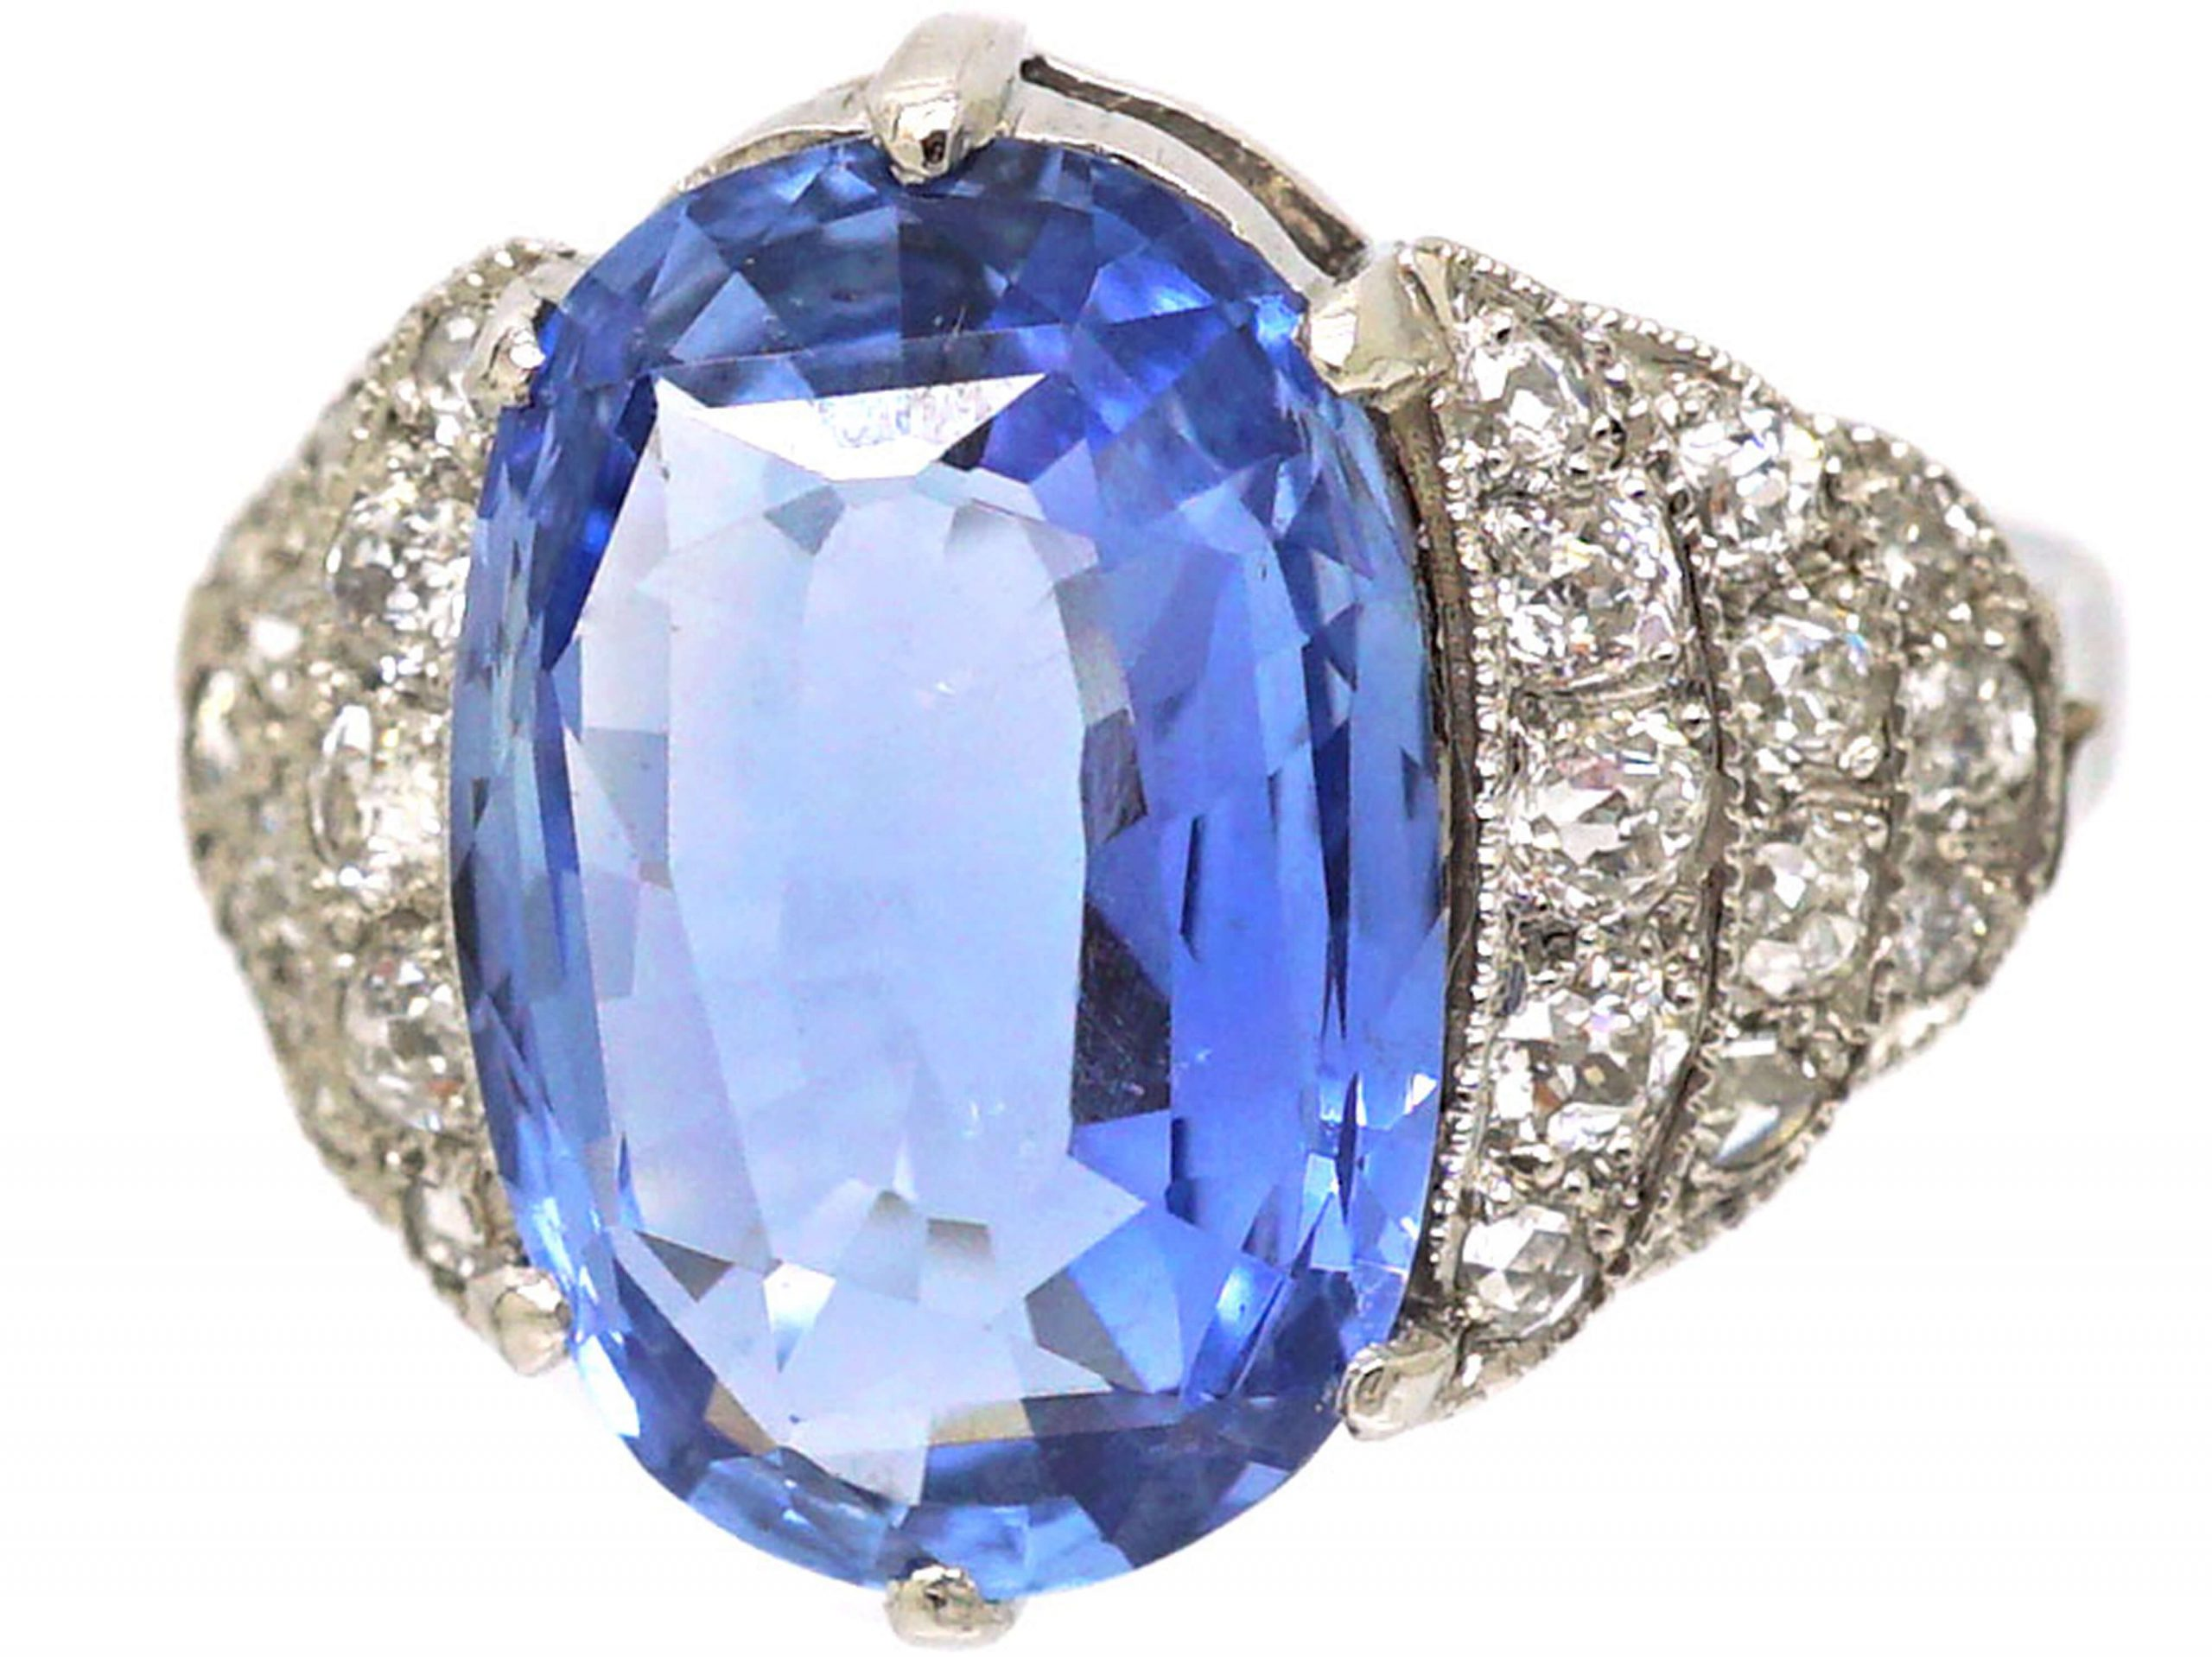 Art Deco 18ct White Gold, Large Ceylon Sapphire Ring with Old Mine Cut Stepped Shoulders